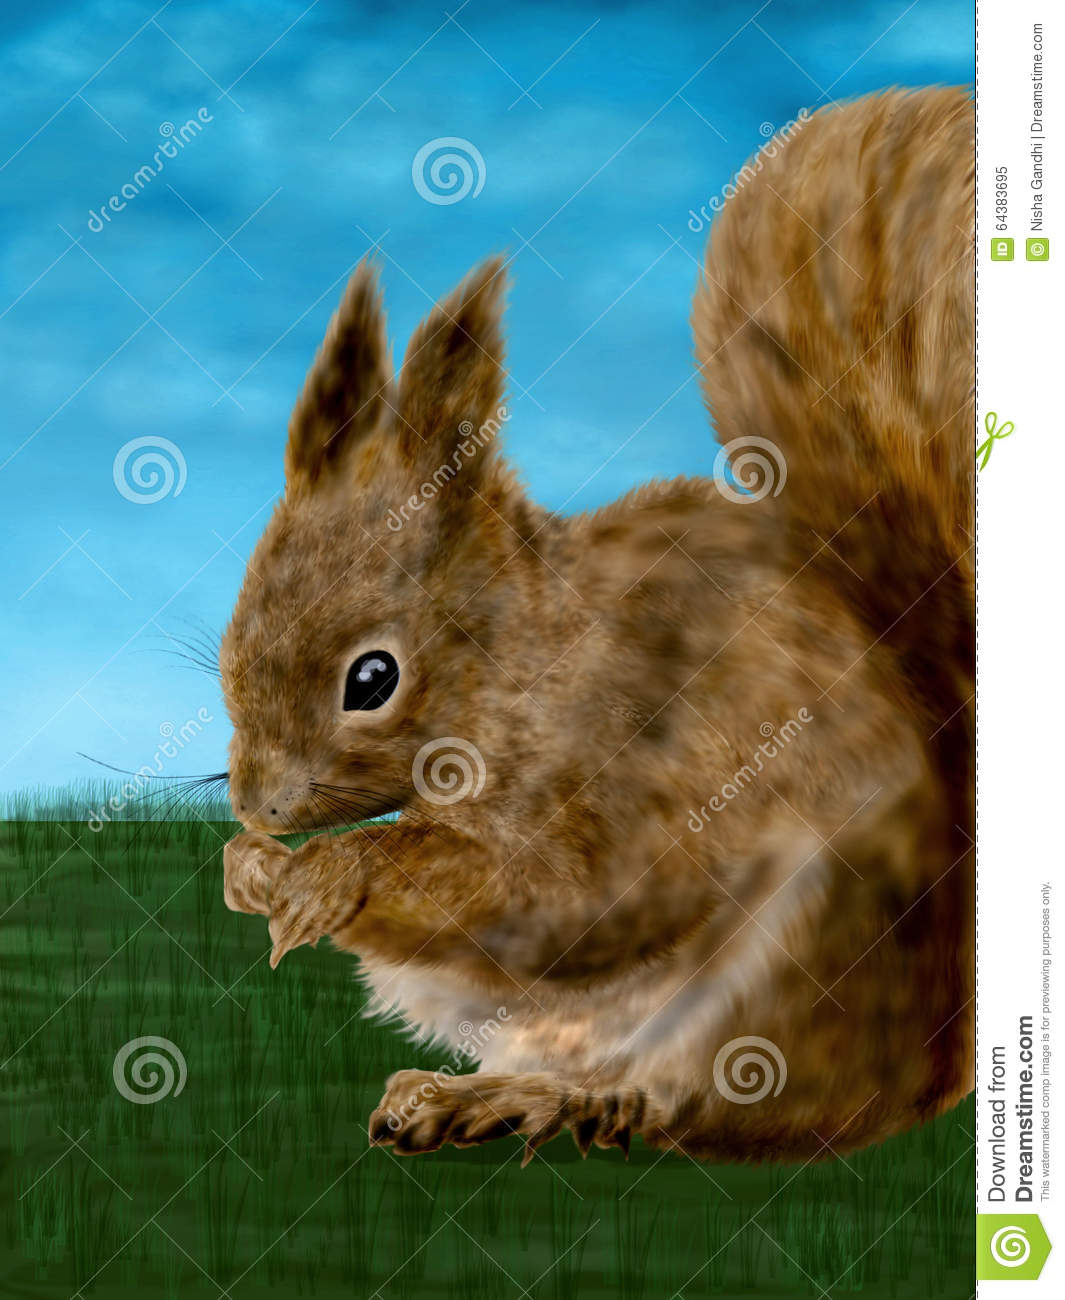 A cute and fun illustration digital painting of a very innocent squirrel